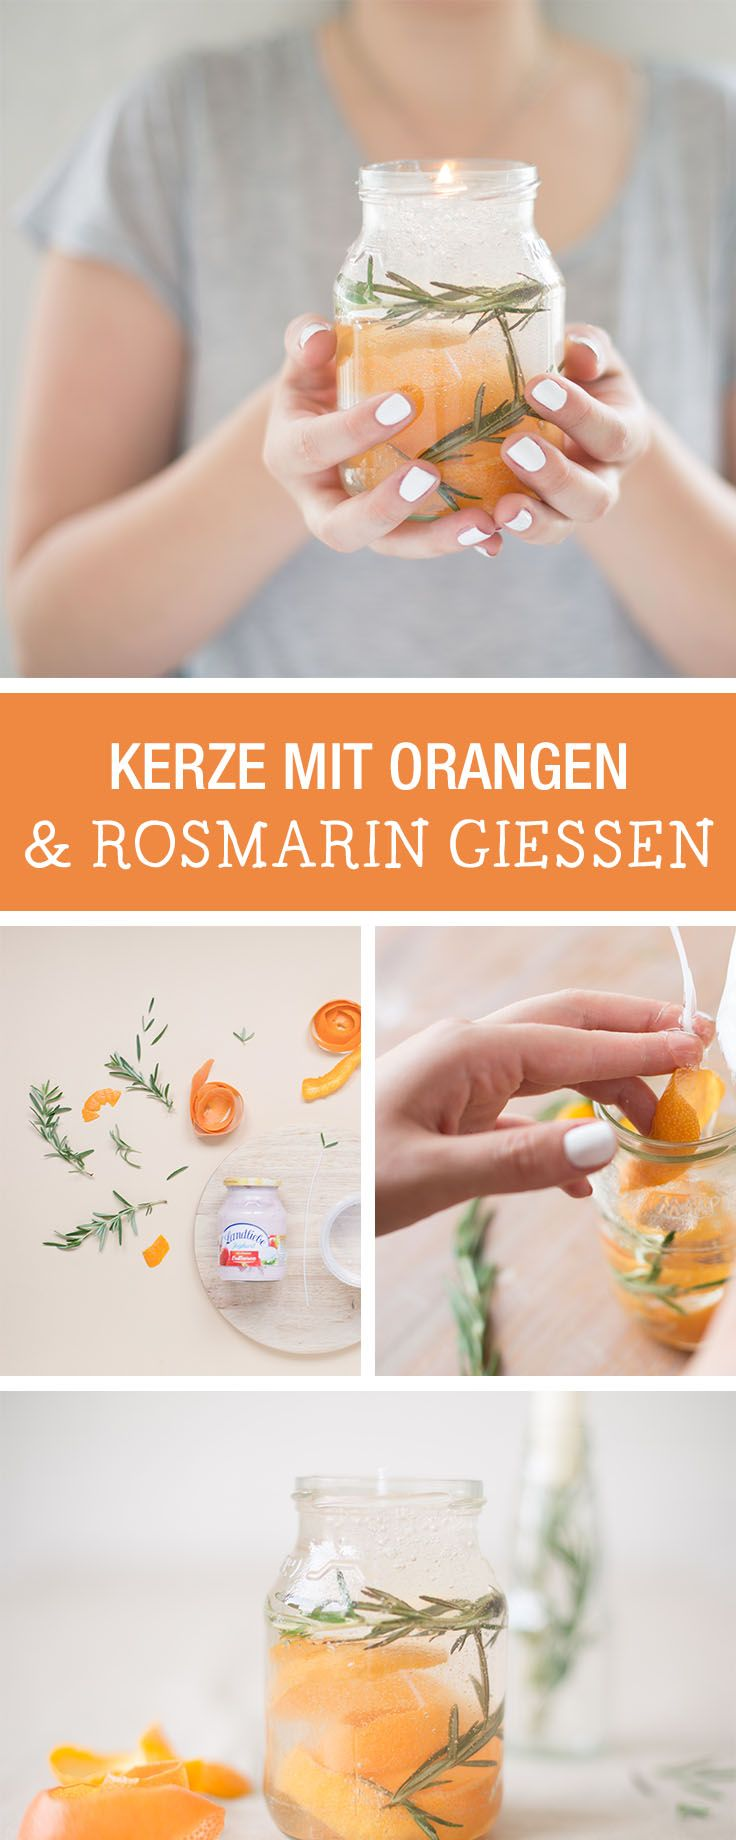 DIY-Idee für Zuhause: Kerze mit Orange und Rosmarin gießen / easy diy inspiration: candle made with orange and rosemary via DaWanda.com